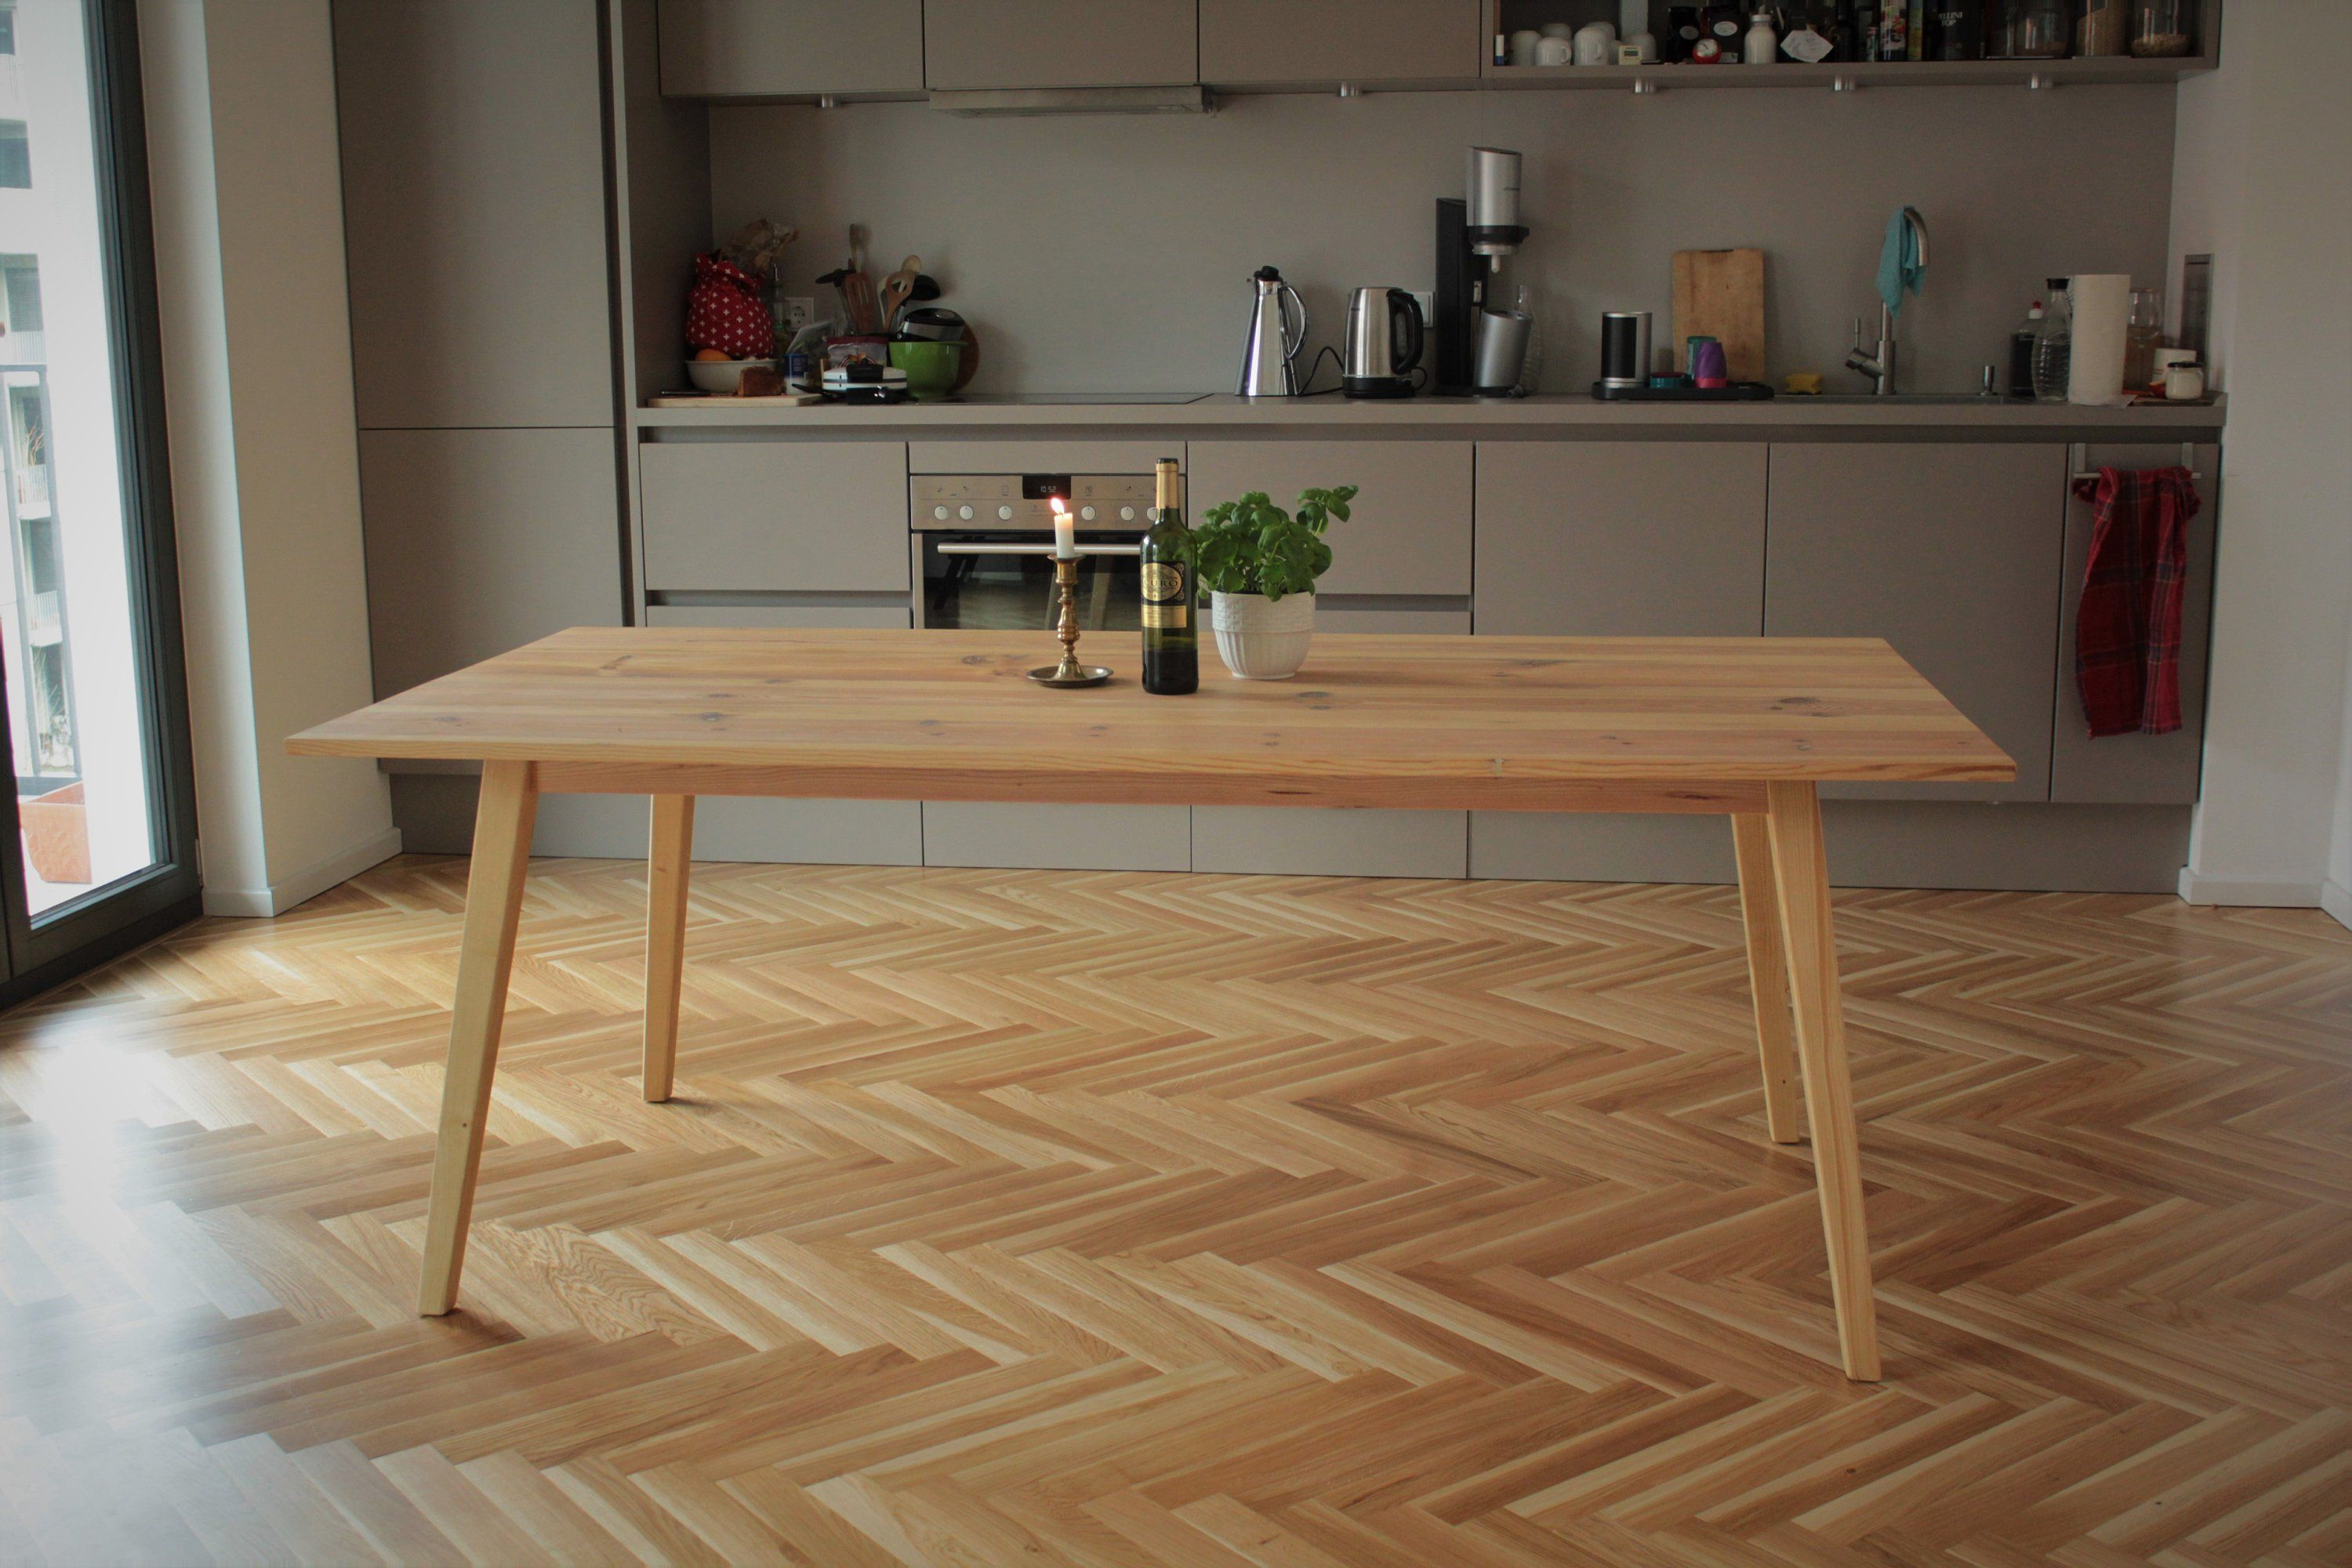 Esszimmertisch Tchibo Dining Table From Old Planks Desk Upcycling Vintage Wooden